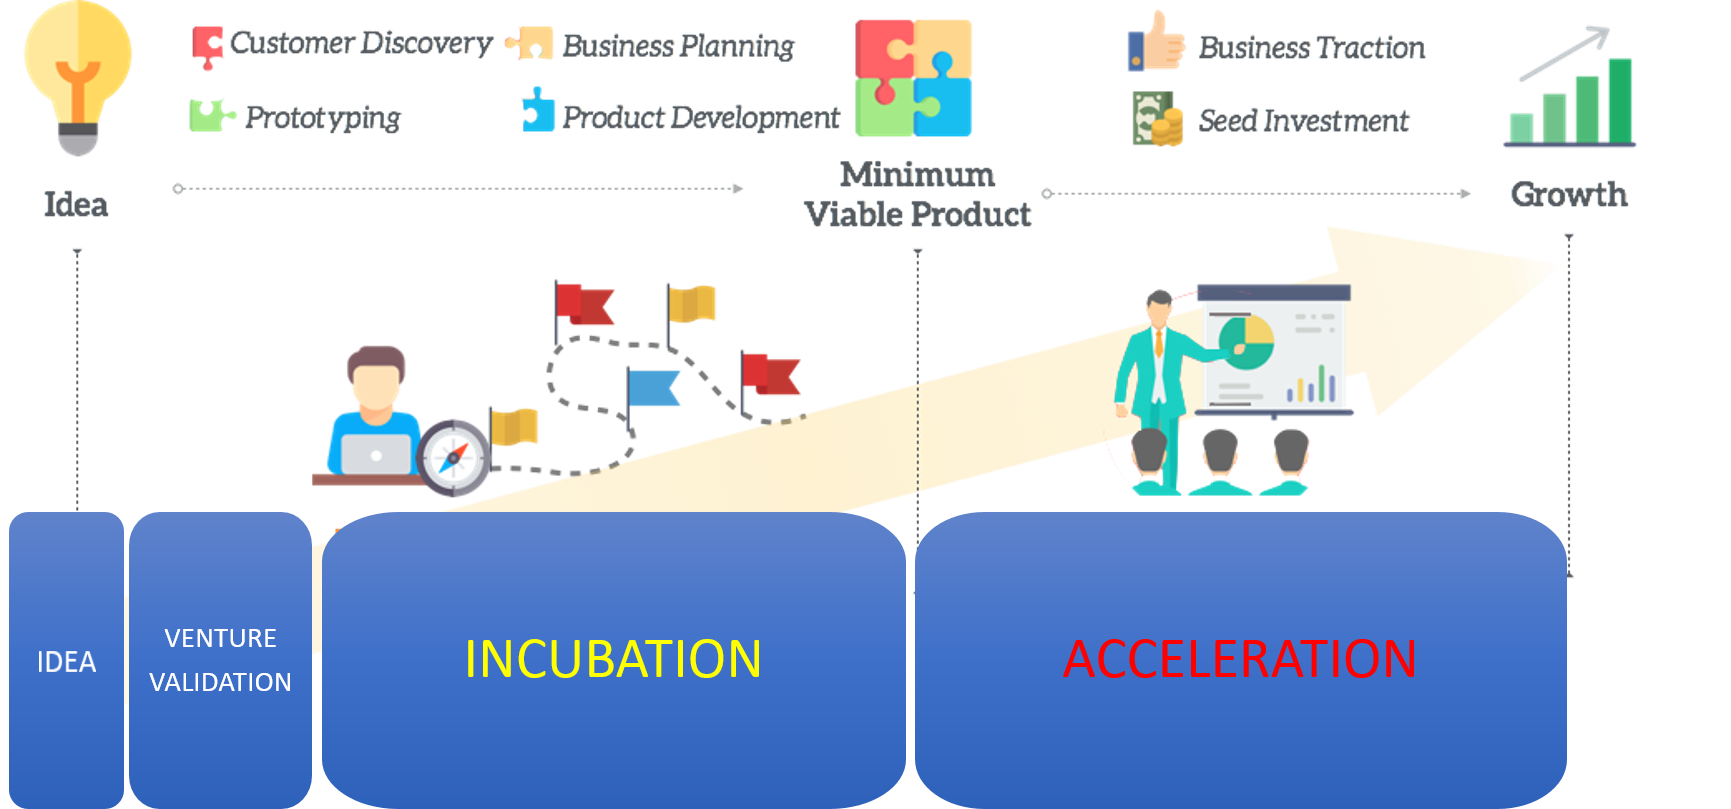 Incubation and acceleration